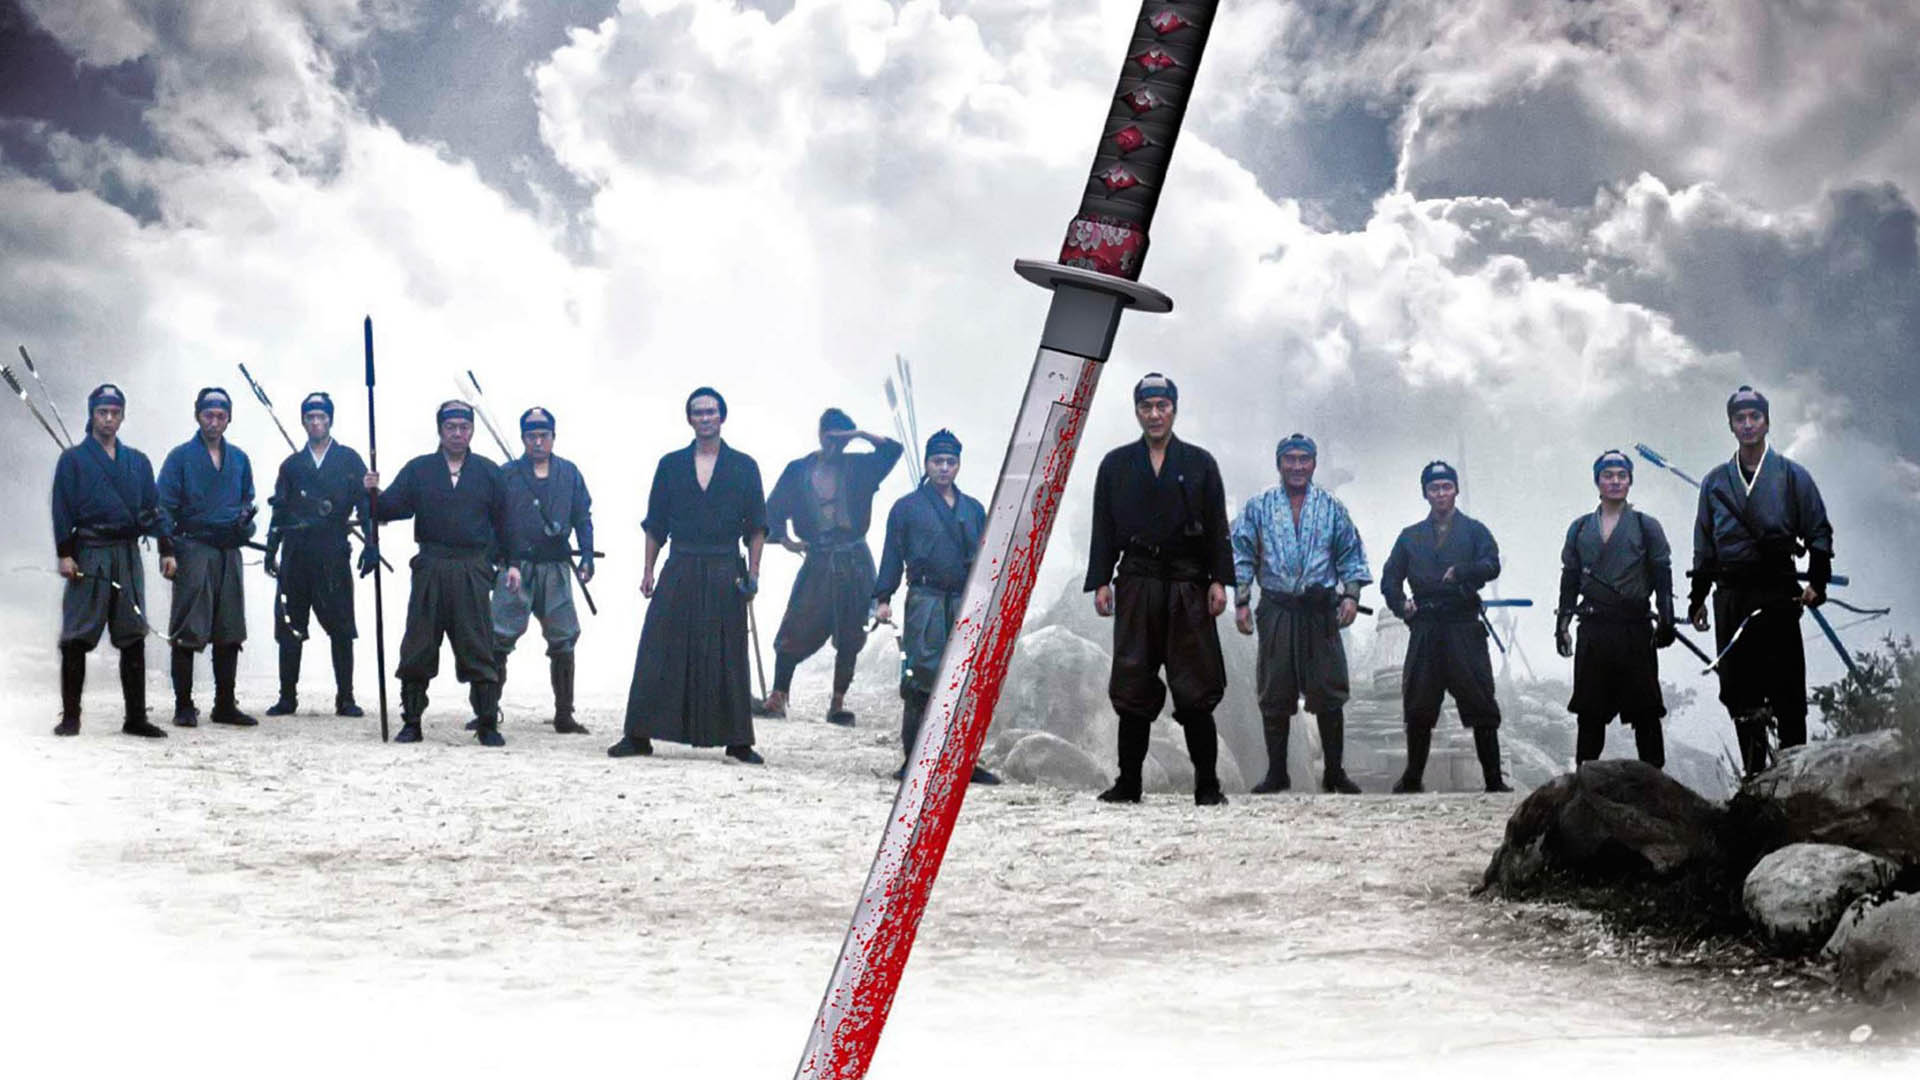 کاور فیلم 13 assassins